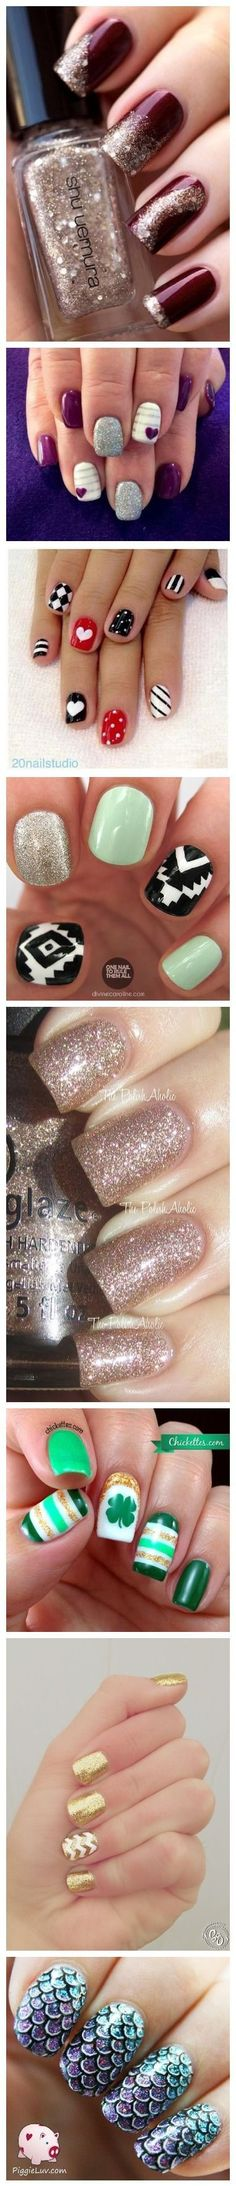 Nail Art Designs - Get Creative Nail Design, Nail Art, Nail Salon, Irvine, Newpo. Nail Art Diy, Easy Nail Art, Diy Nails, Cute Nails, Pretty Nails, Fingernail Designs, Nail Polish Designs, Acrylic Nail Designs, Fabulous Nails